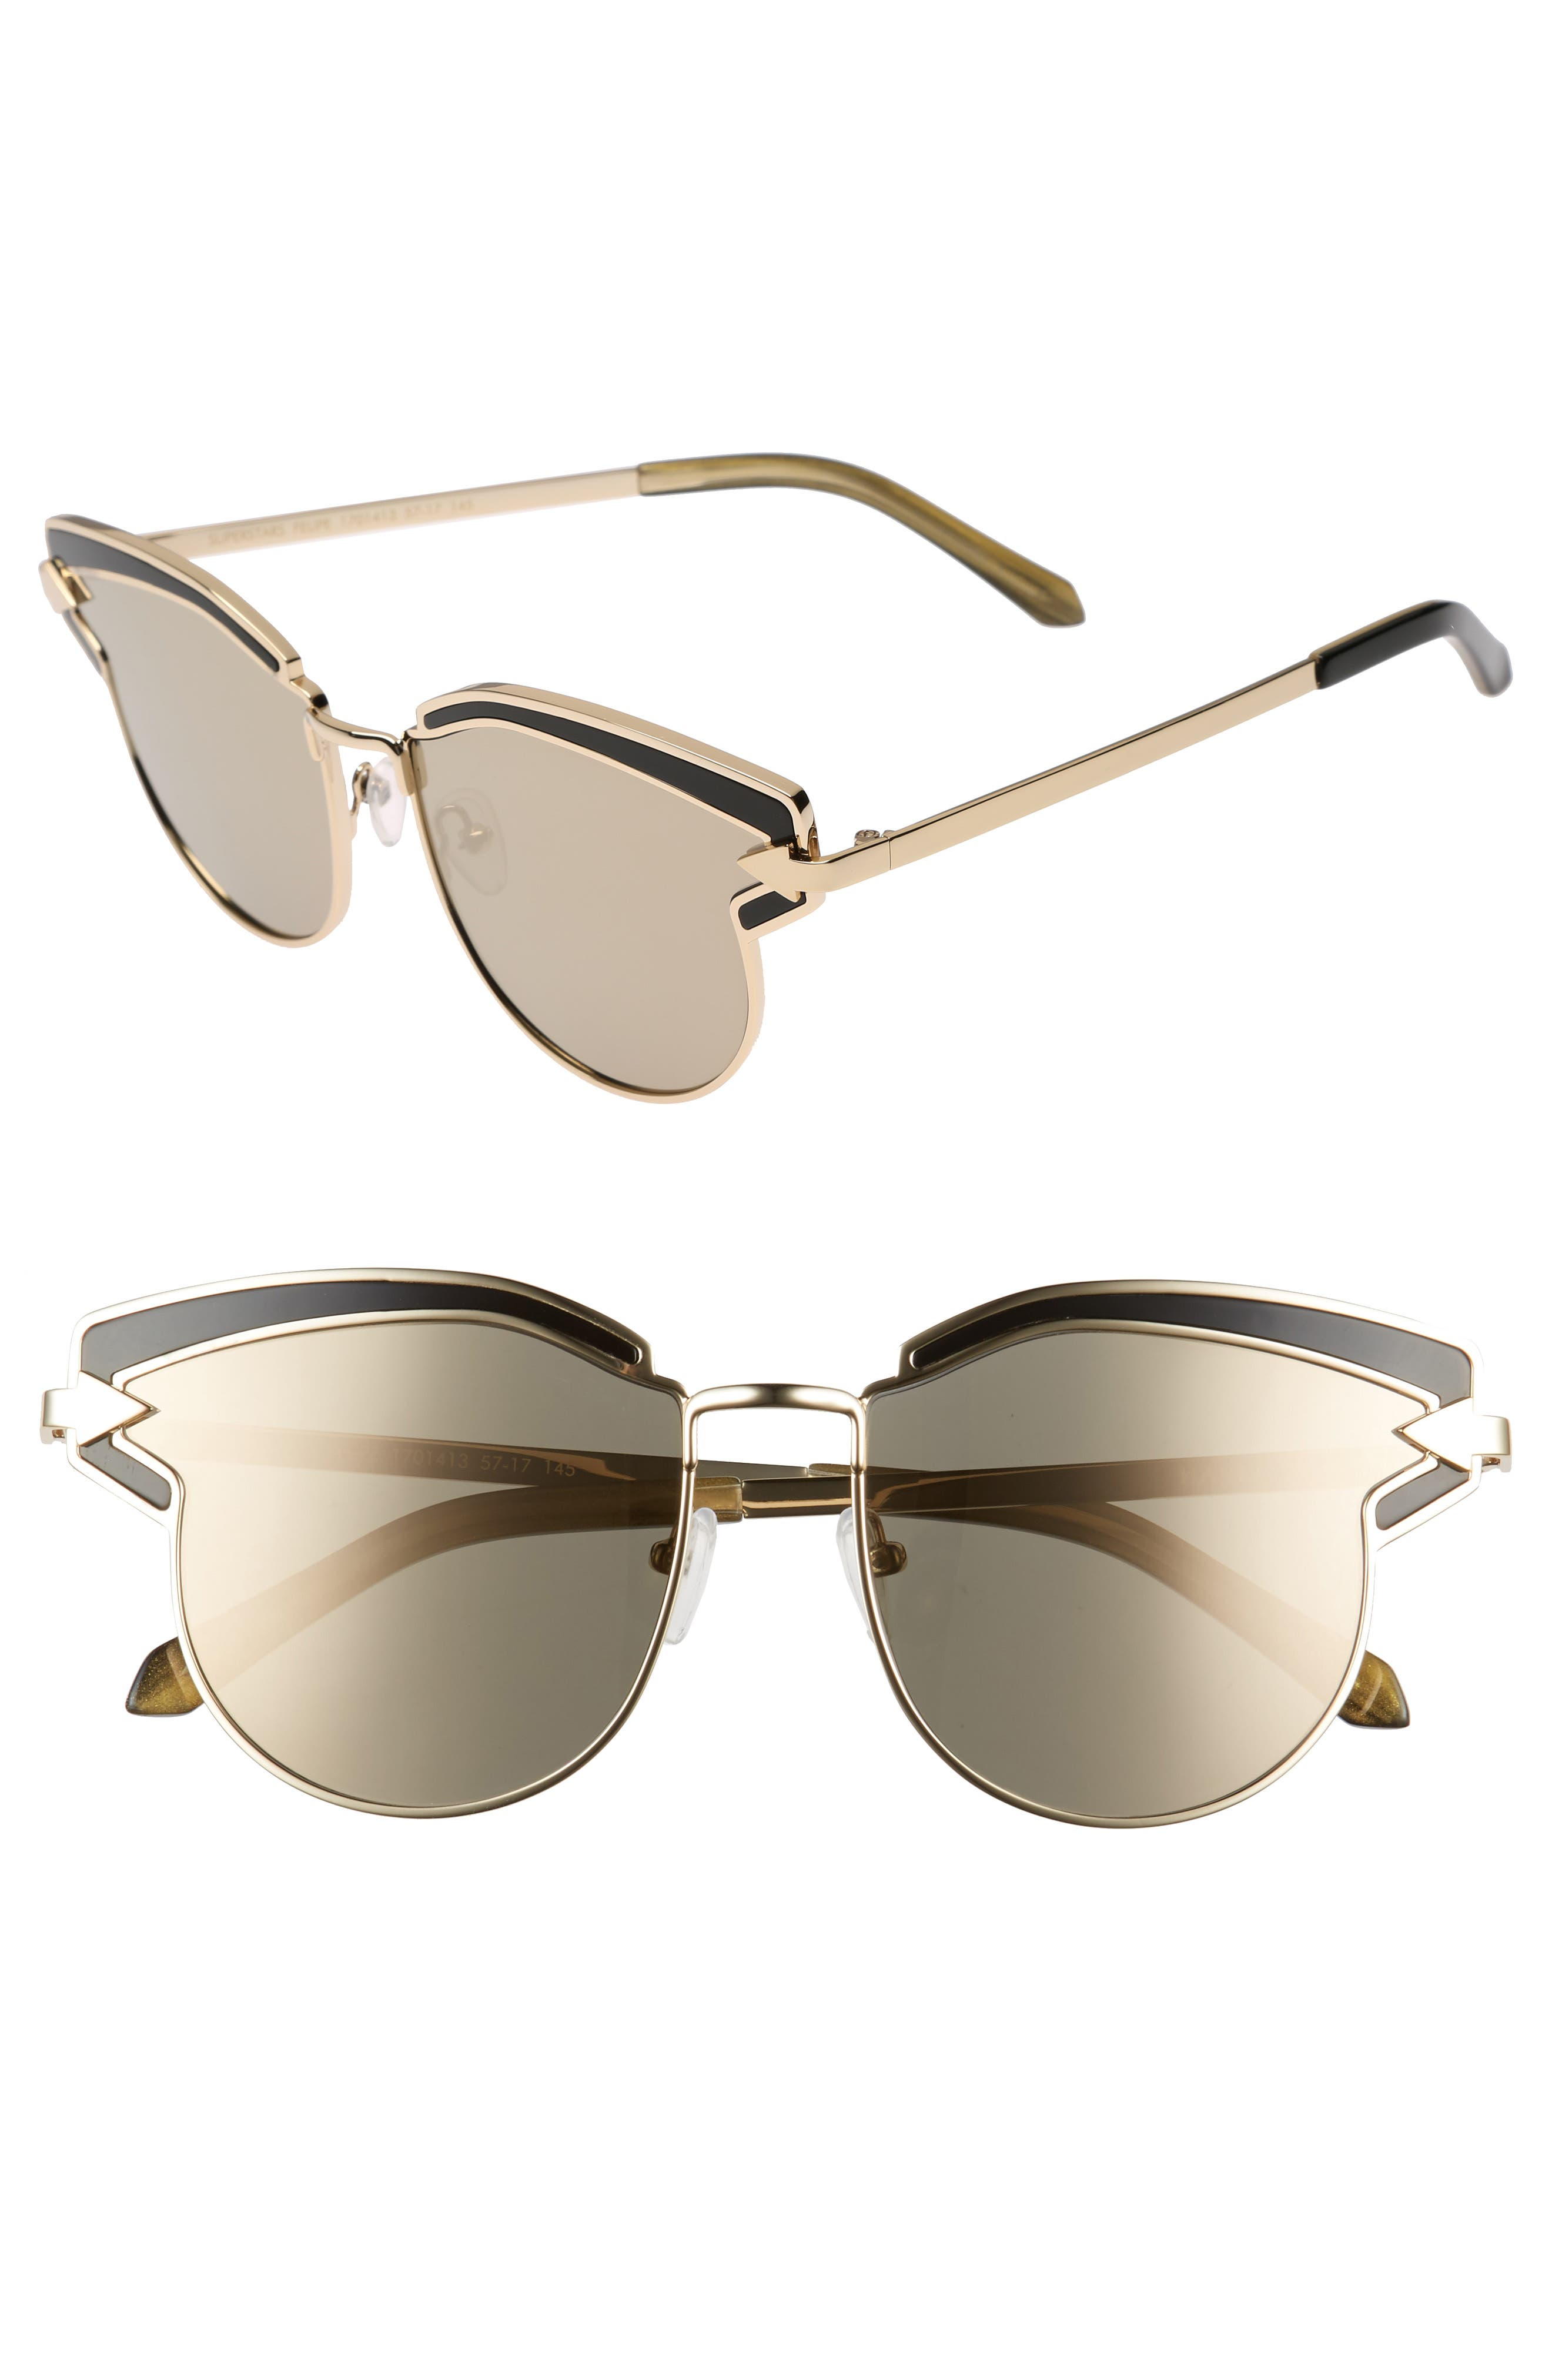 Karen Walker Superstars - Felipe 57mm Sunglasses